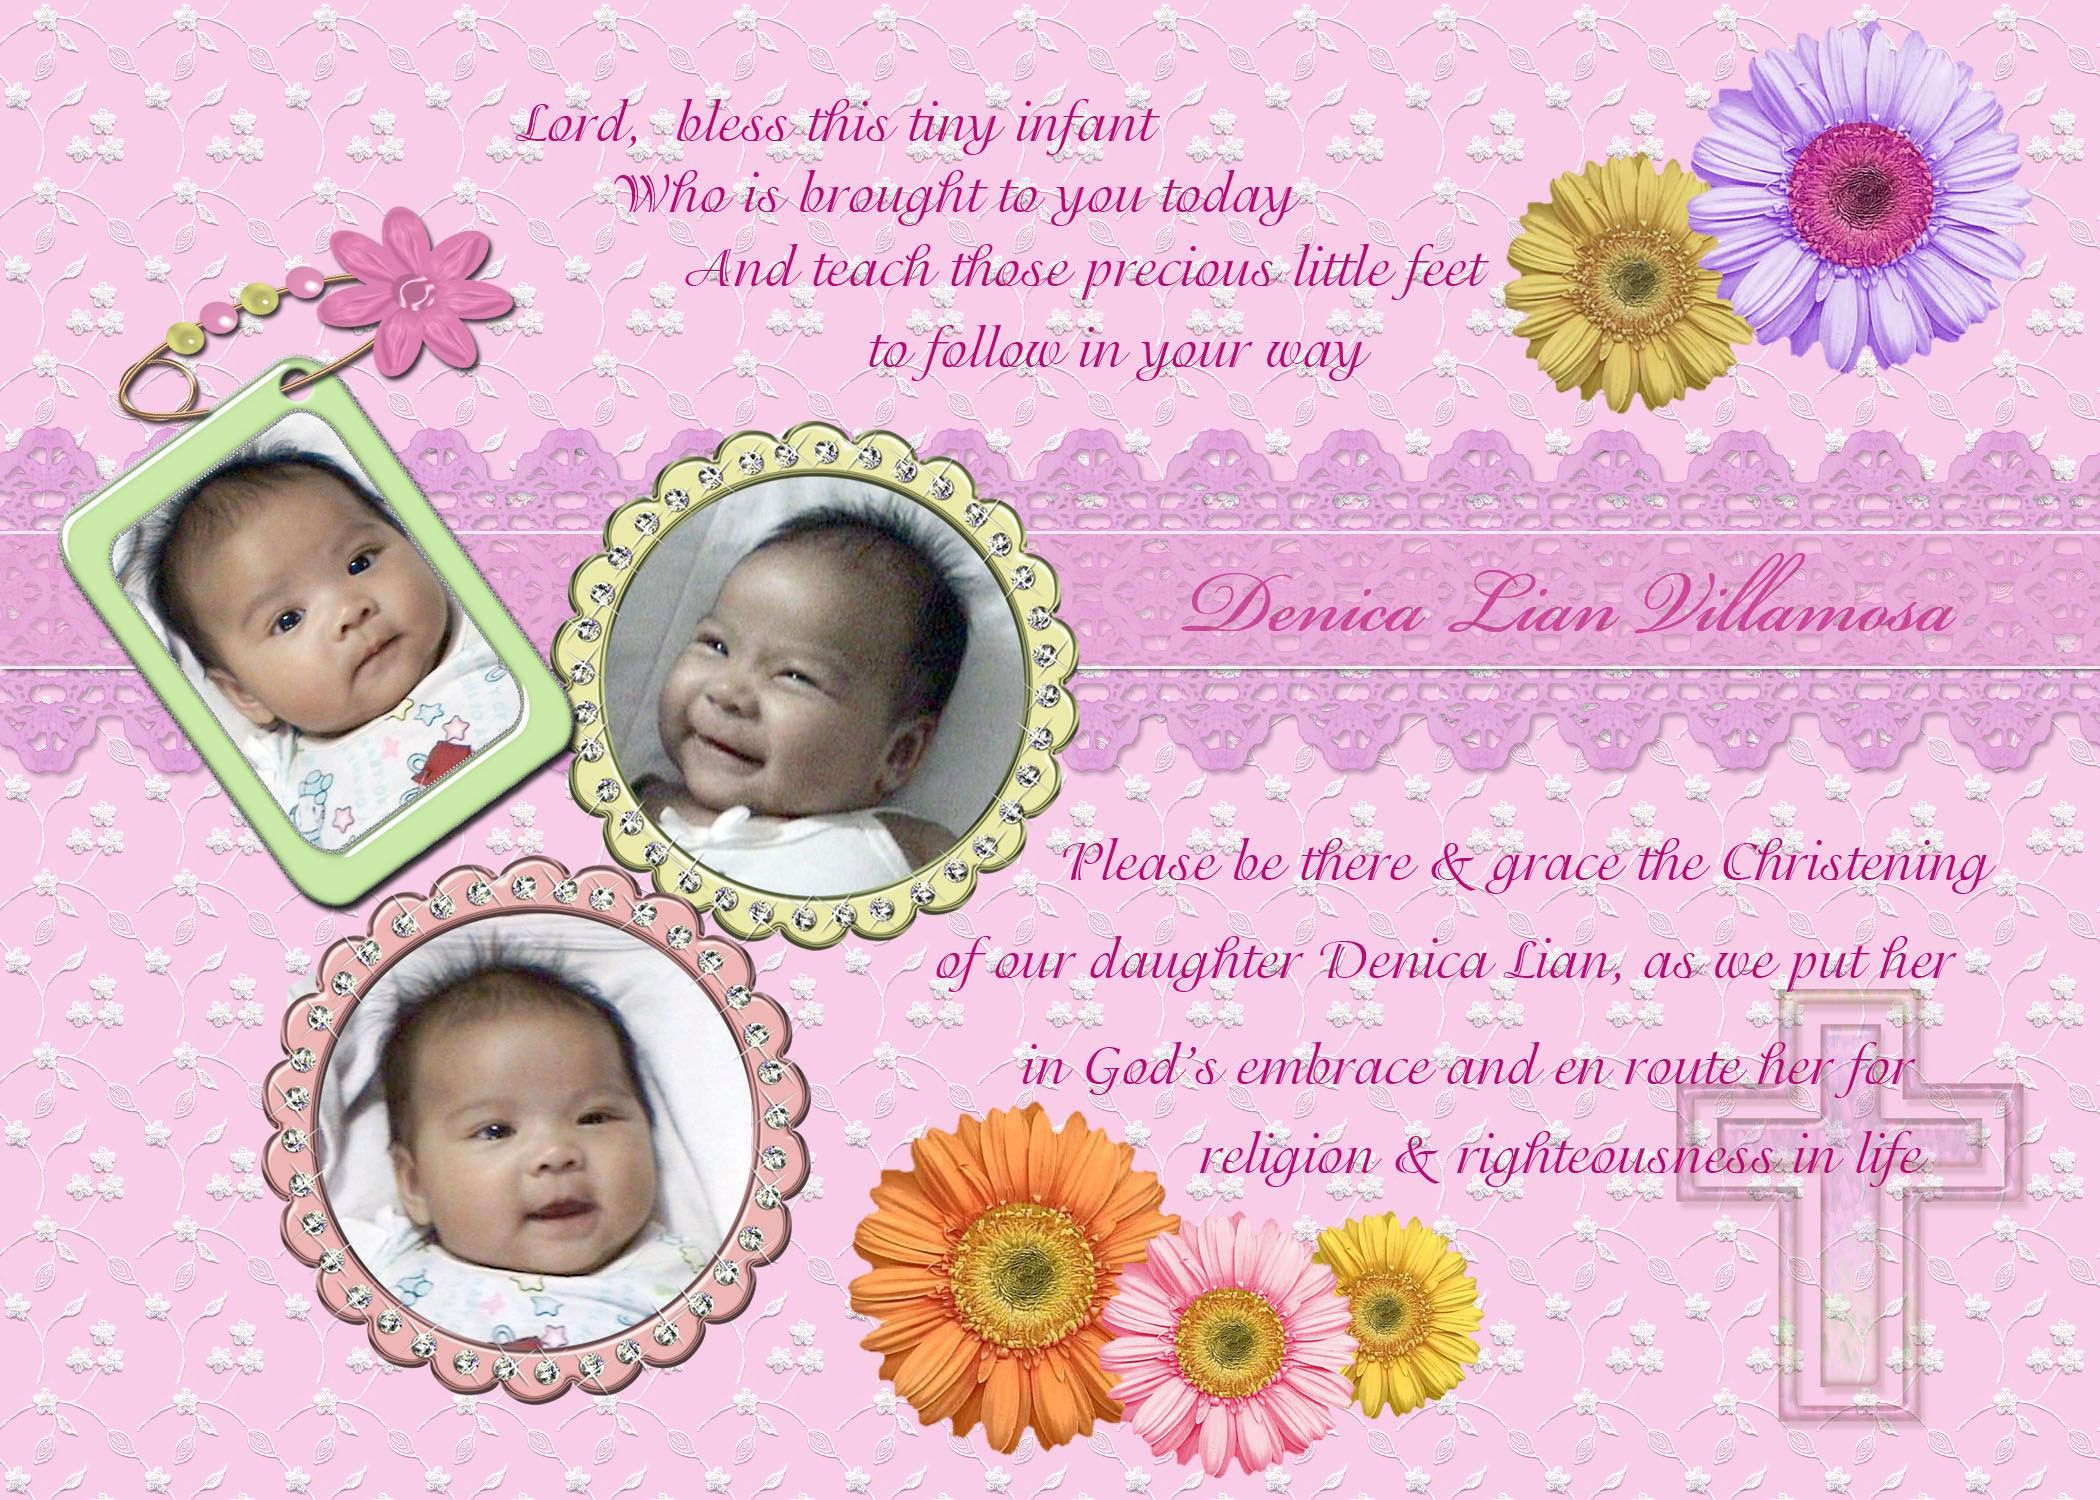 Christening Invitation Background For Baby Girl With pertaining to Printable Blessing Certificate Template Free 7 New Concepts